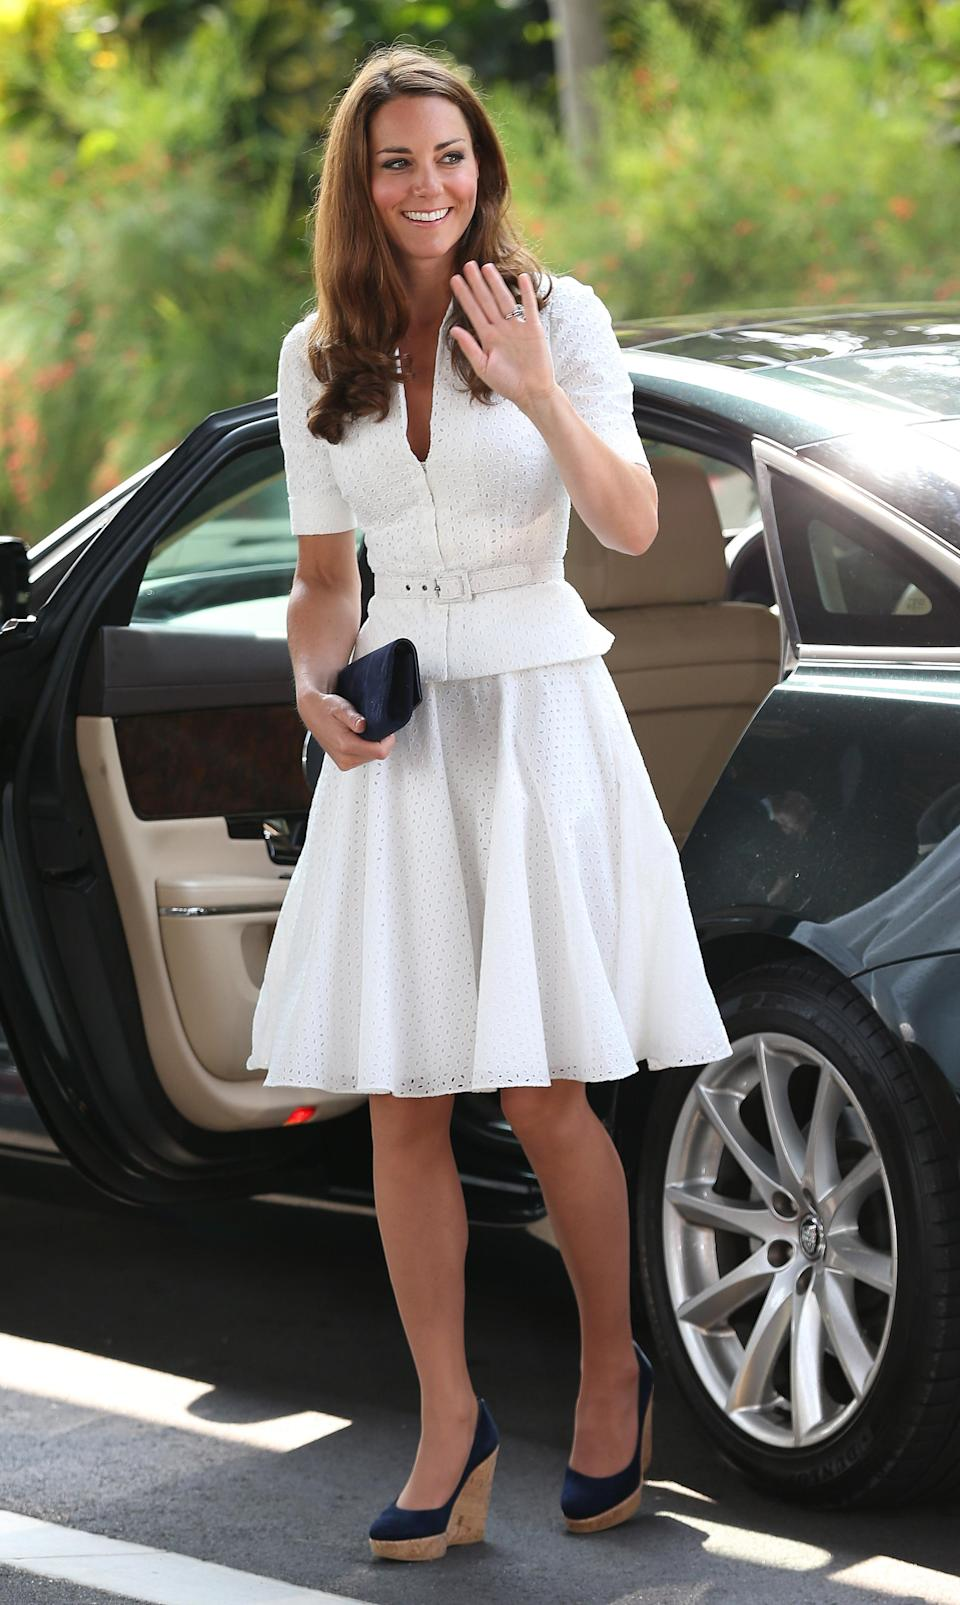 <p>This one is a no-brainer — when wearing a dress or coat, hemlines must always skim the knees or thereabouts (generally, they are never more than three or four inches above the knee). Short skirts are out of the question. </p>